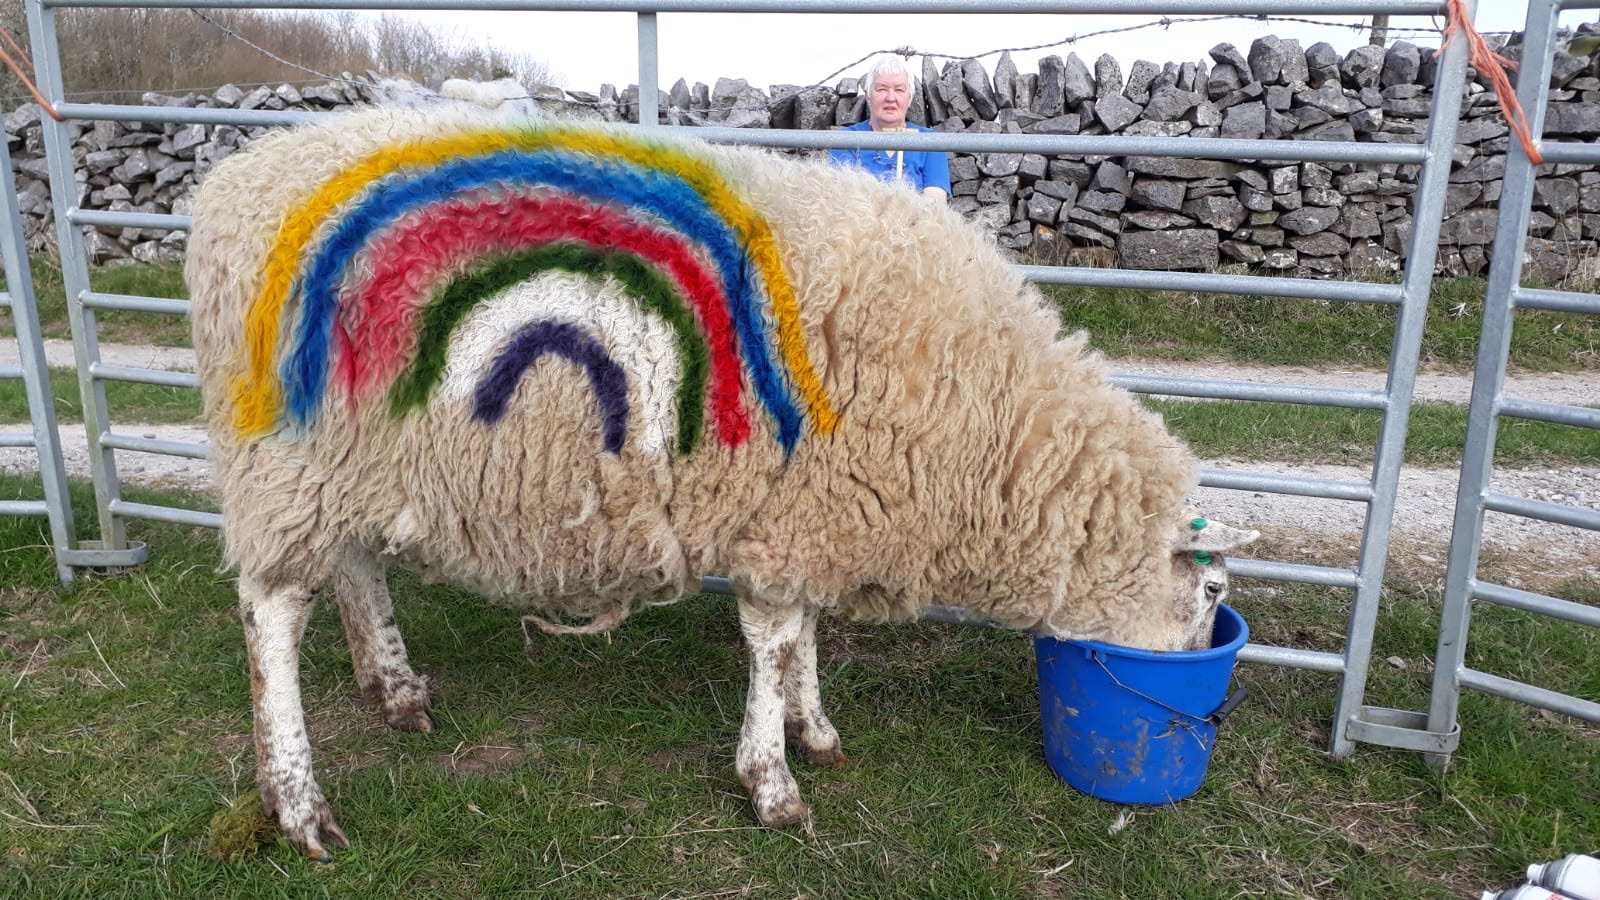 Buttercup the hungry sheep